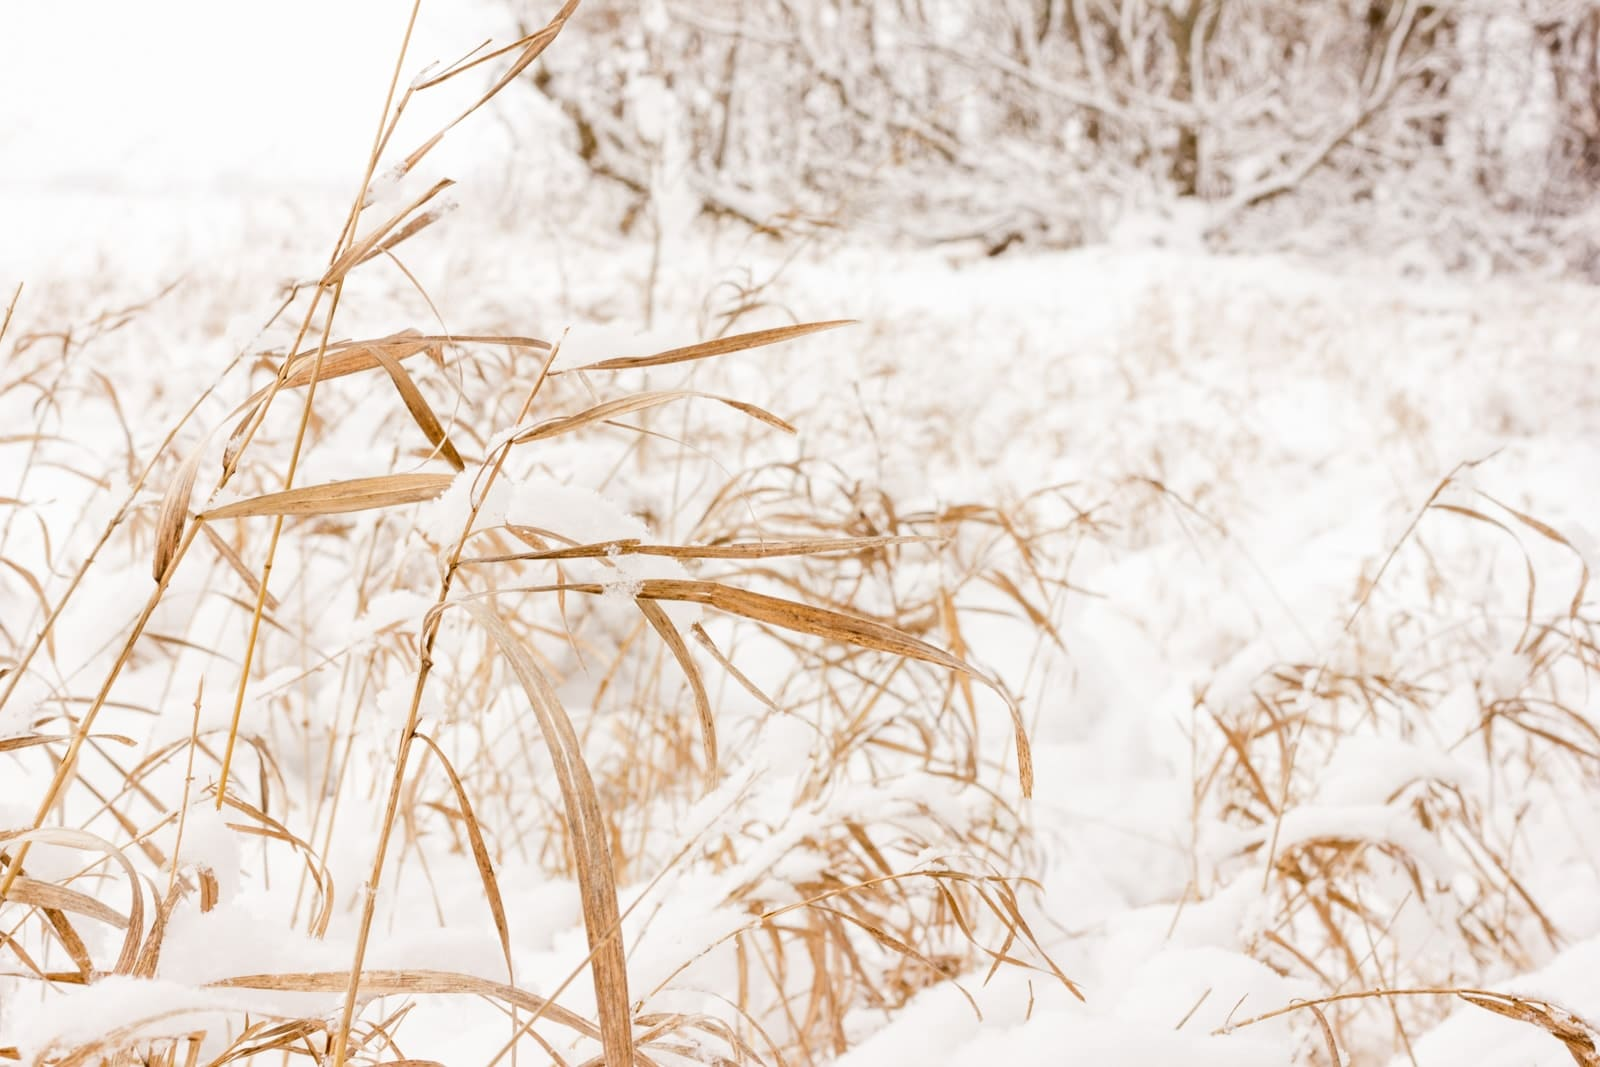 Snow covered prairie grasses